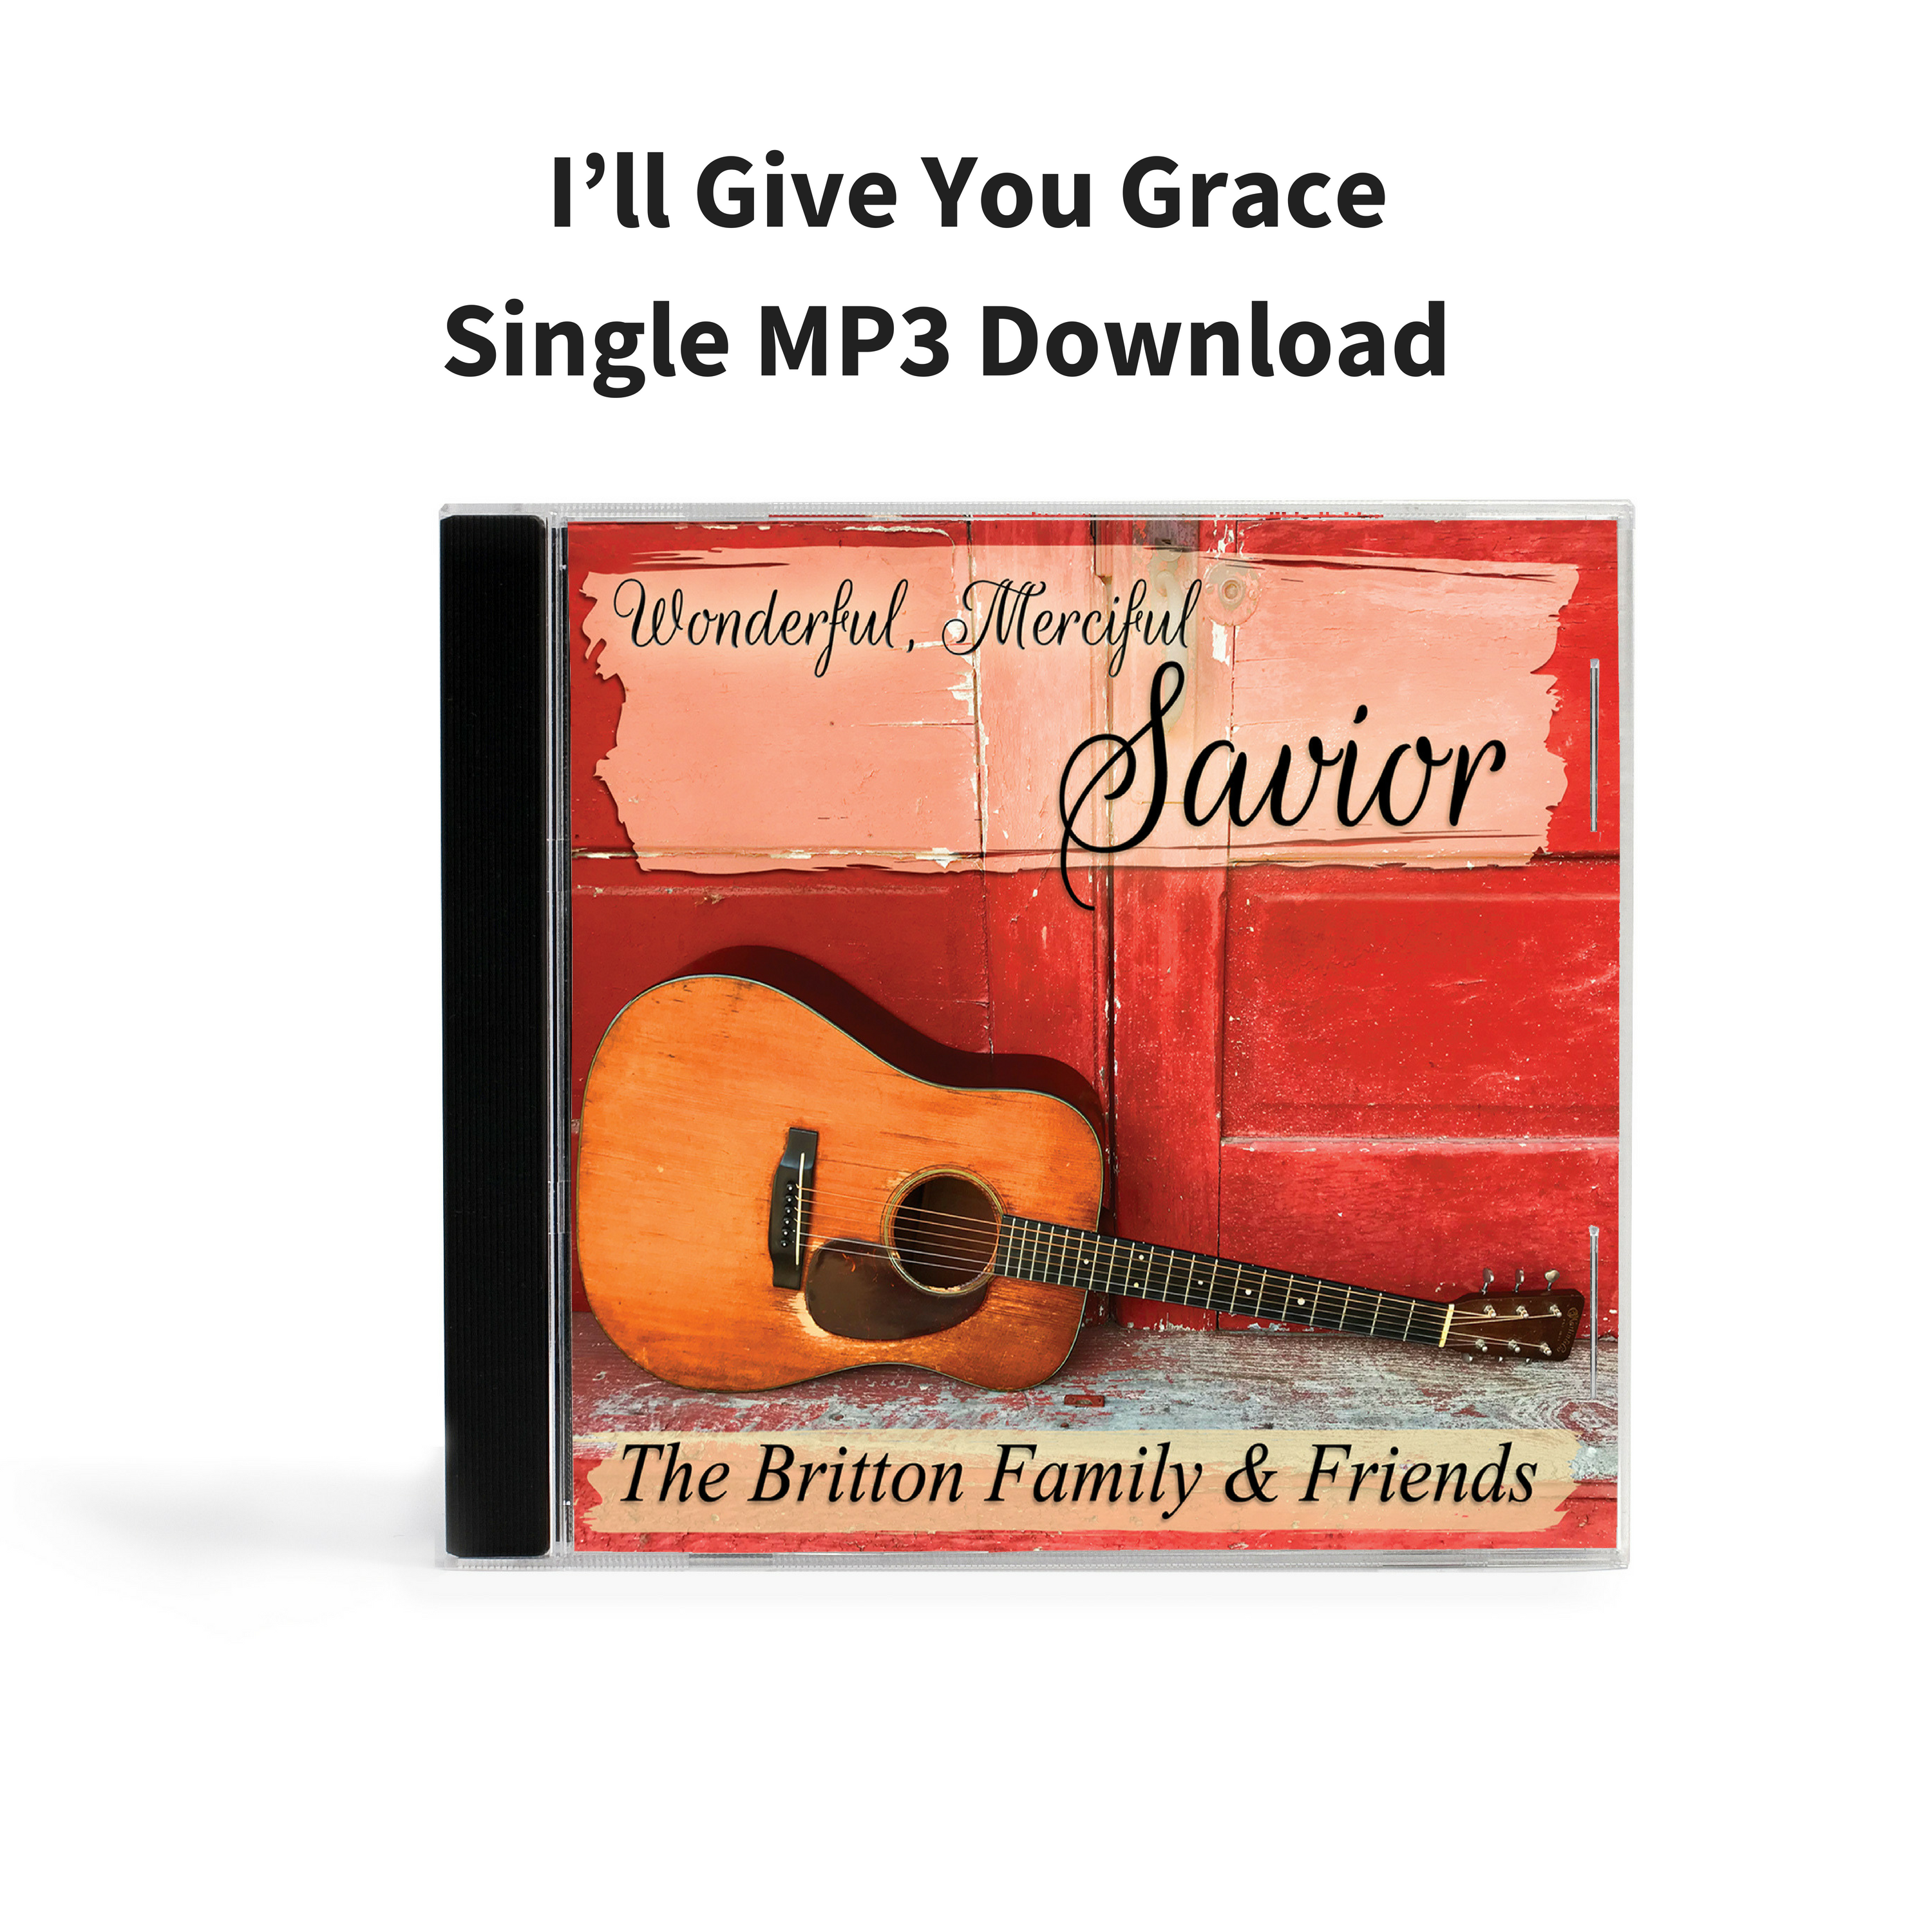 I'll Give You Grace - Single MP3 Download 000008